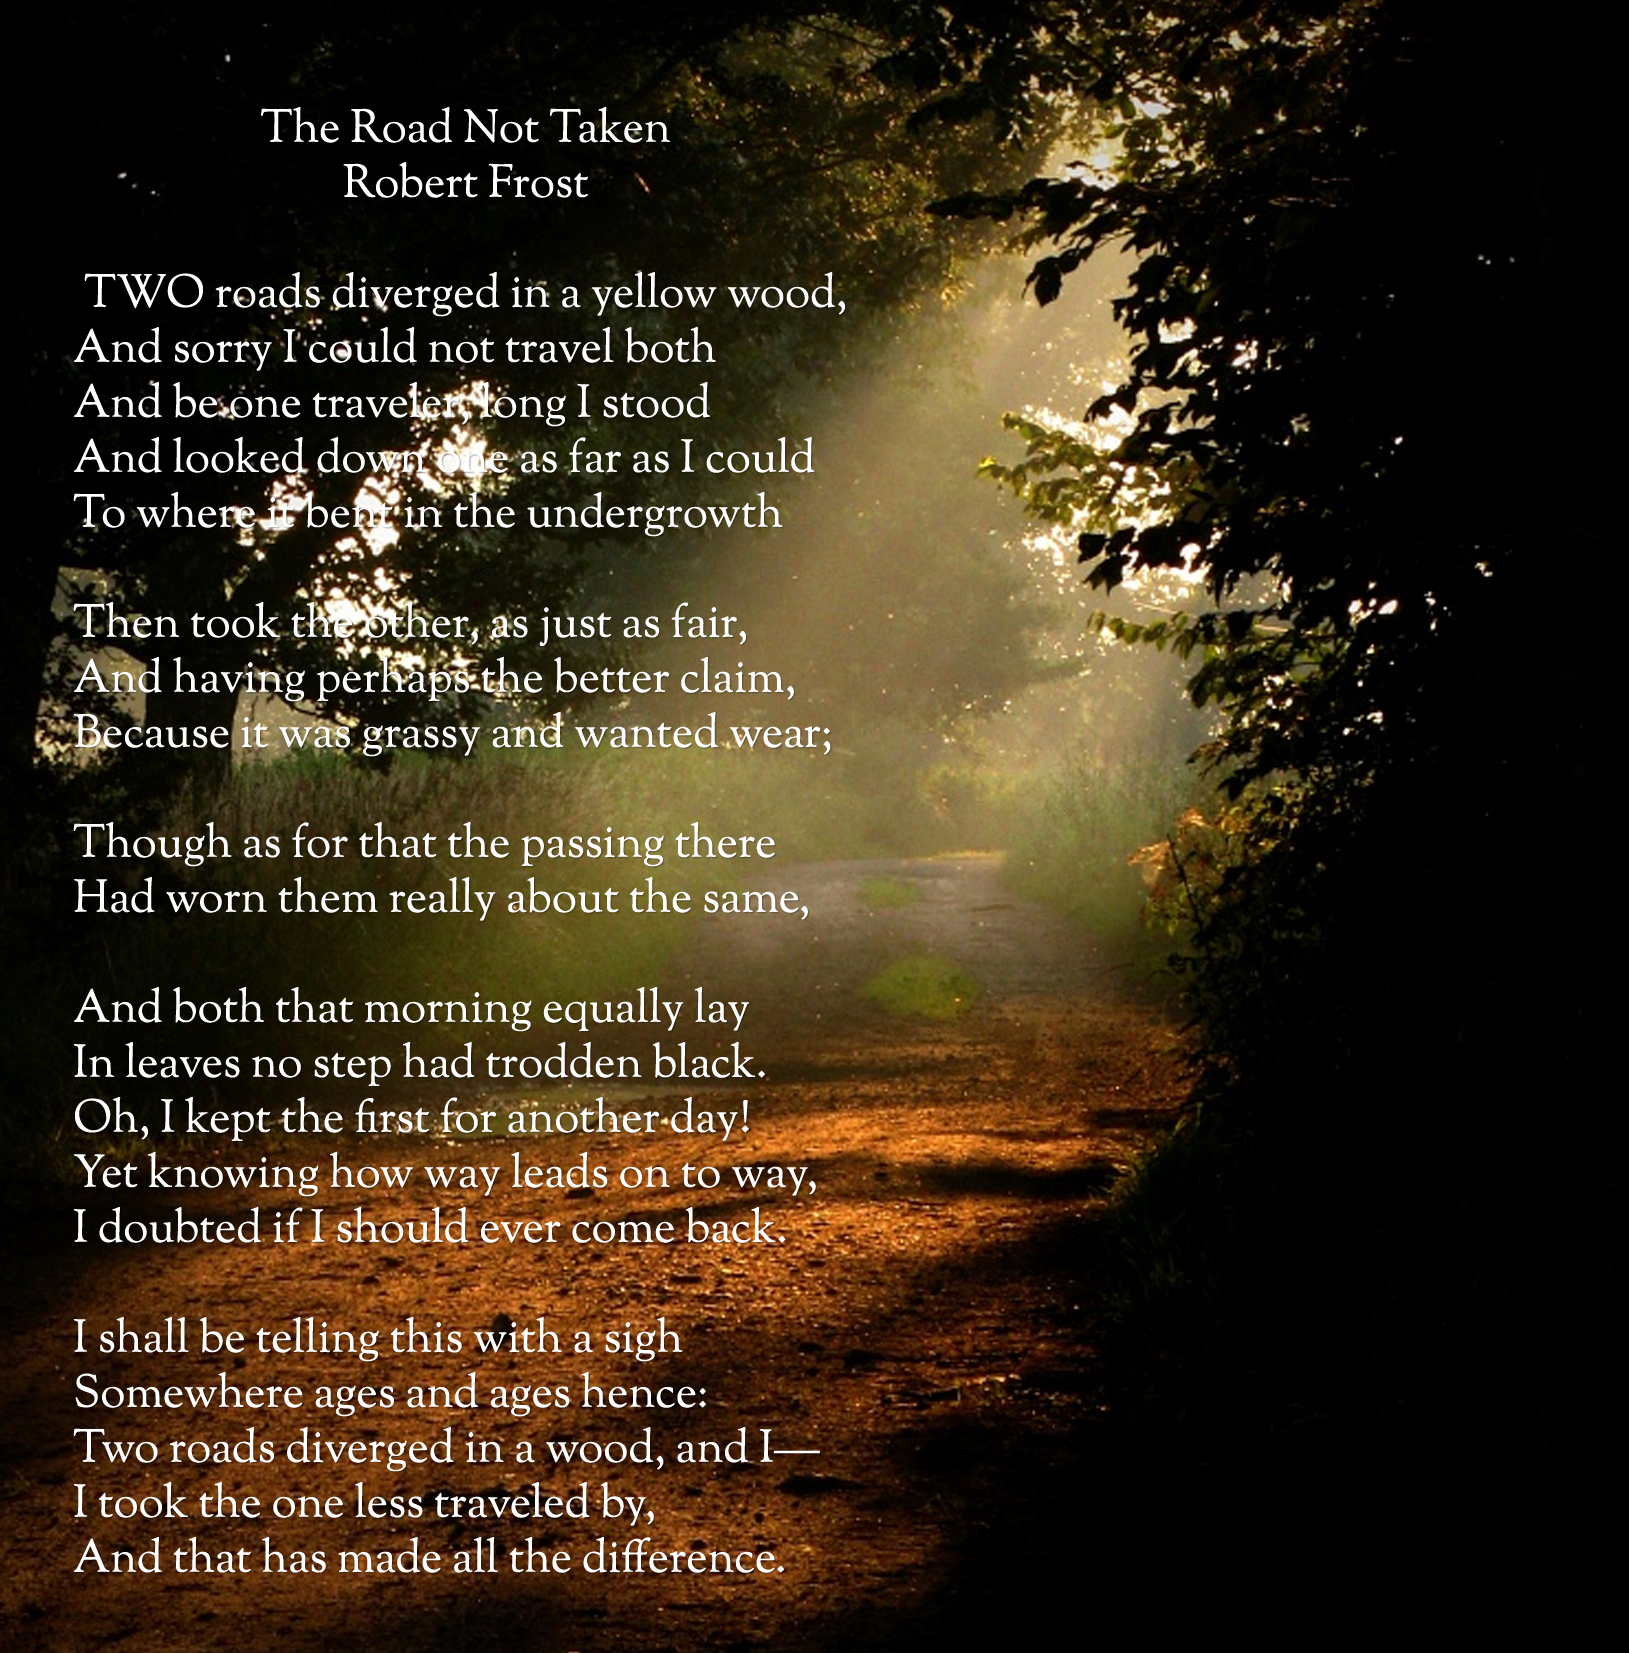 The path less traveled poem